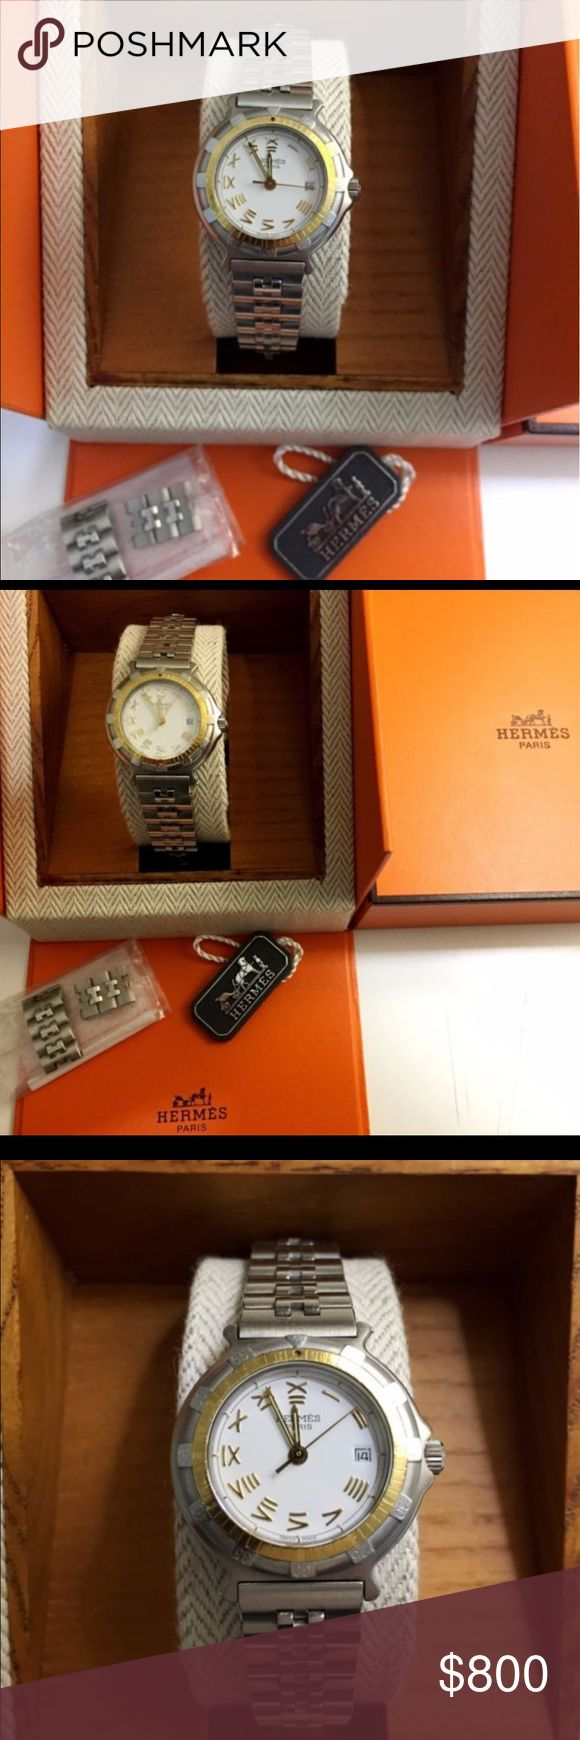 🔥💯%Auth Hermes Solid 18K/SS Bezel ⌚️with Box/tag 100% AUTHENTIC Vintage Ladies Hermes Captain Nemo Diver's Solid 18K ROTATING Bezel / SS watch in very good to excellent overall condition. Service/ Run.Comes with the Original Hermes BOX and TAG! The dial is in excellent to NEAR-FLAWLESS condition with almost no signs of age. The hands are also in excellent condition with minimal signs of any age, the Original SAPPHIRE Crystal is in excellent condition (no rubs marks, no chips, no cracks)…